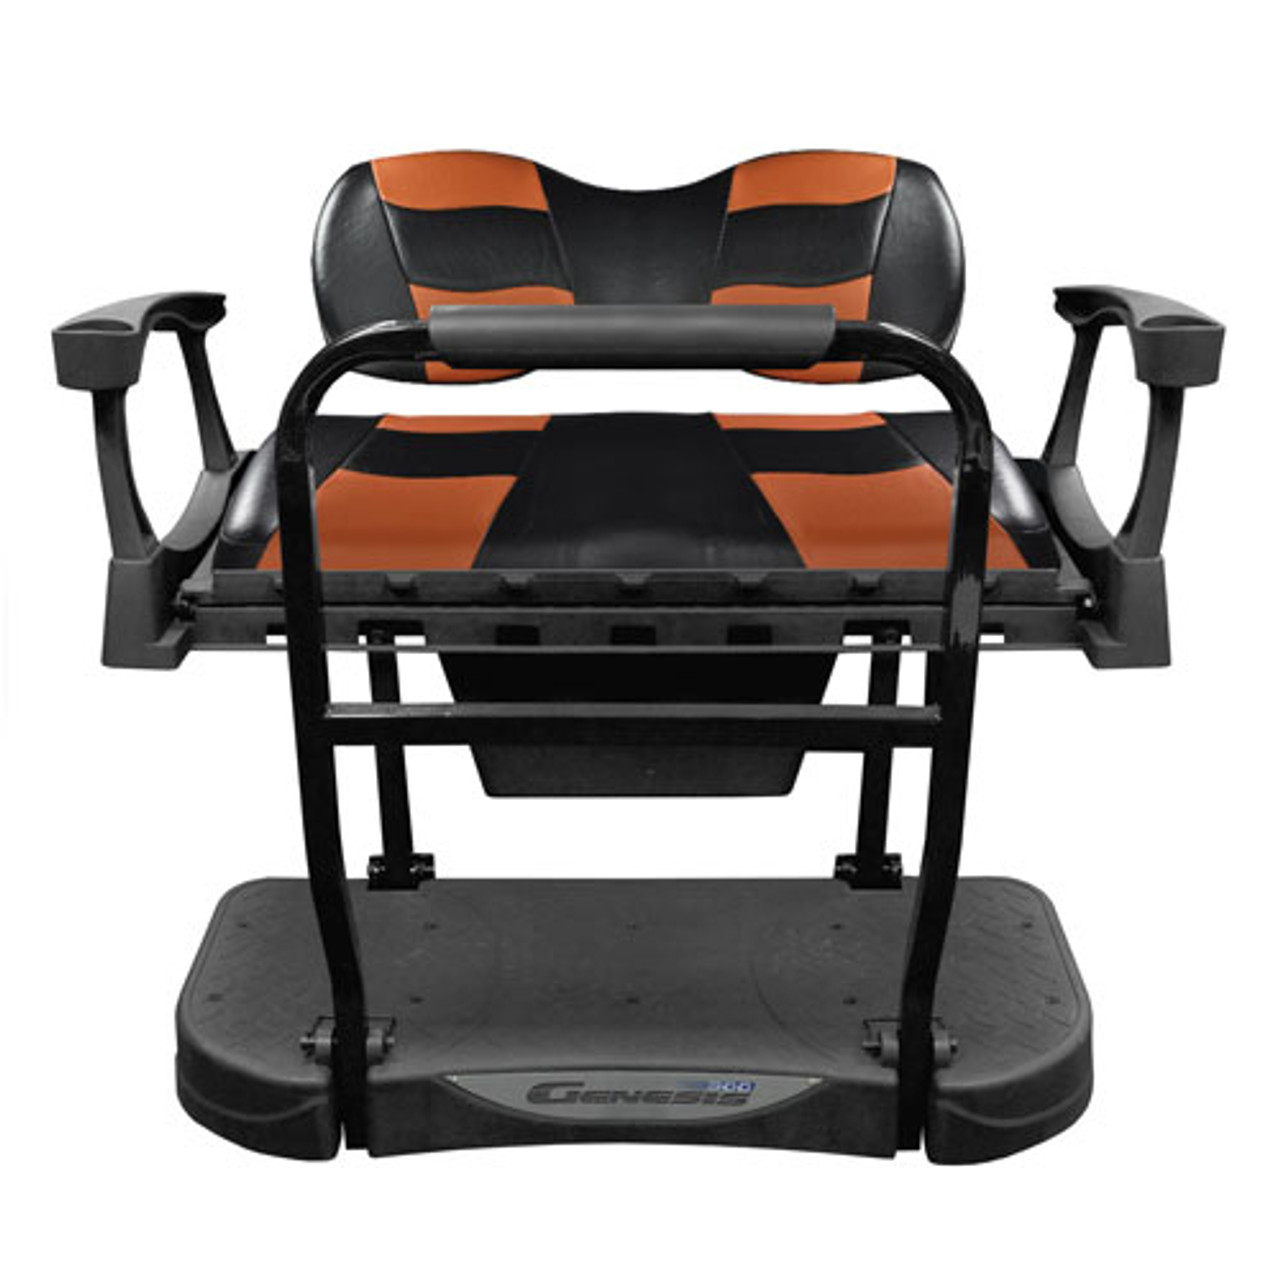 Madjax Genesis 250 Rear Flip Seat with Deluxe RIPTIDE Black/Moroccan Cushions